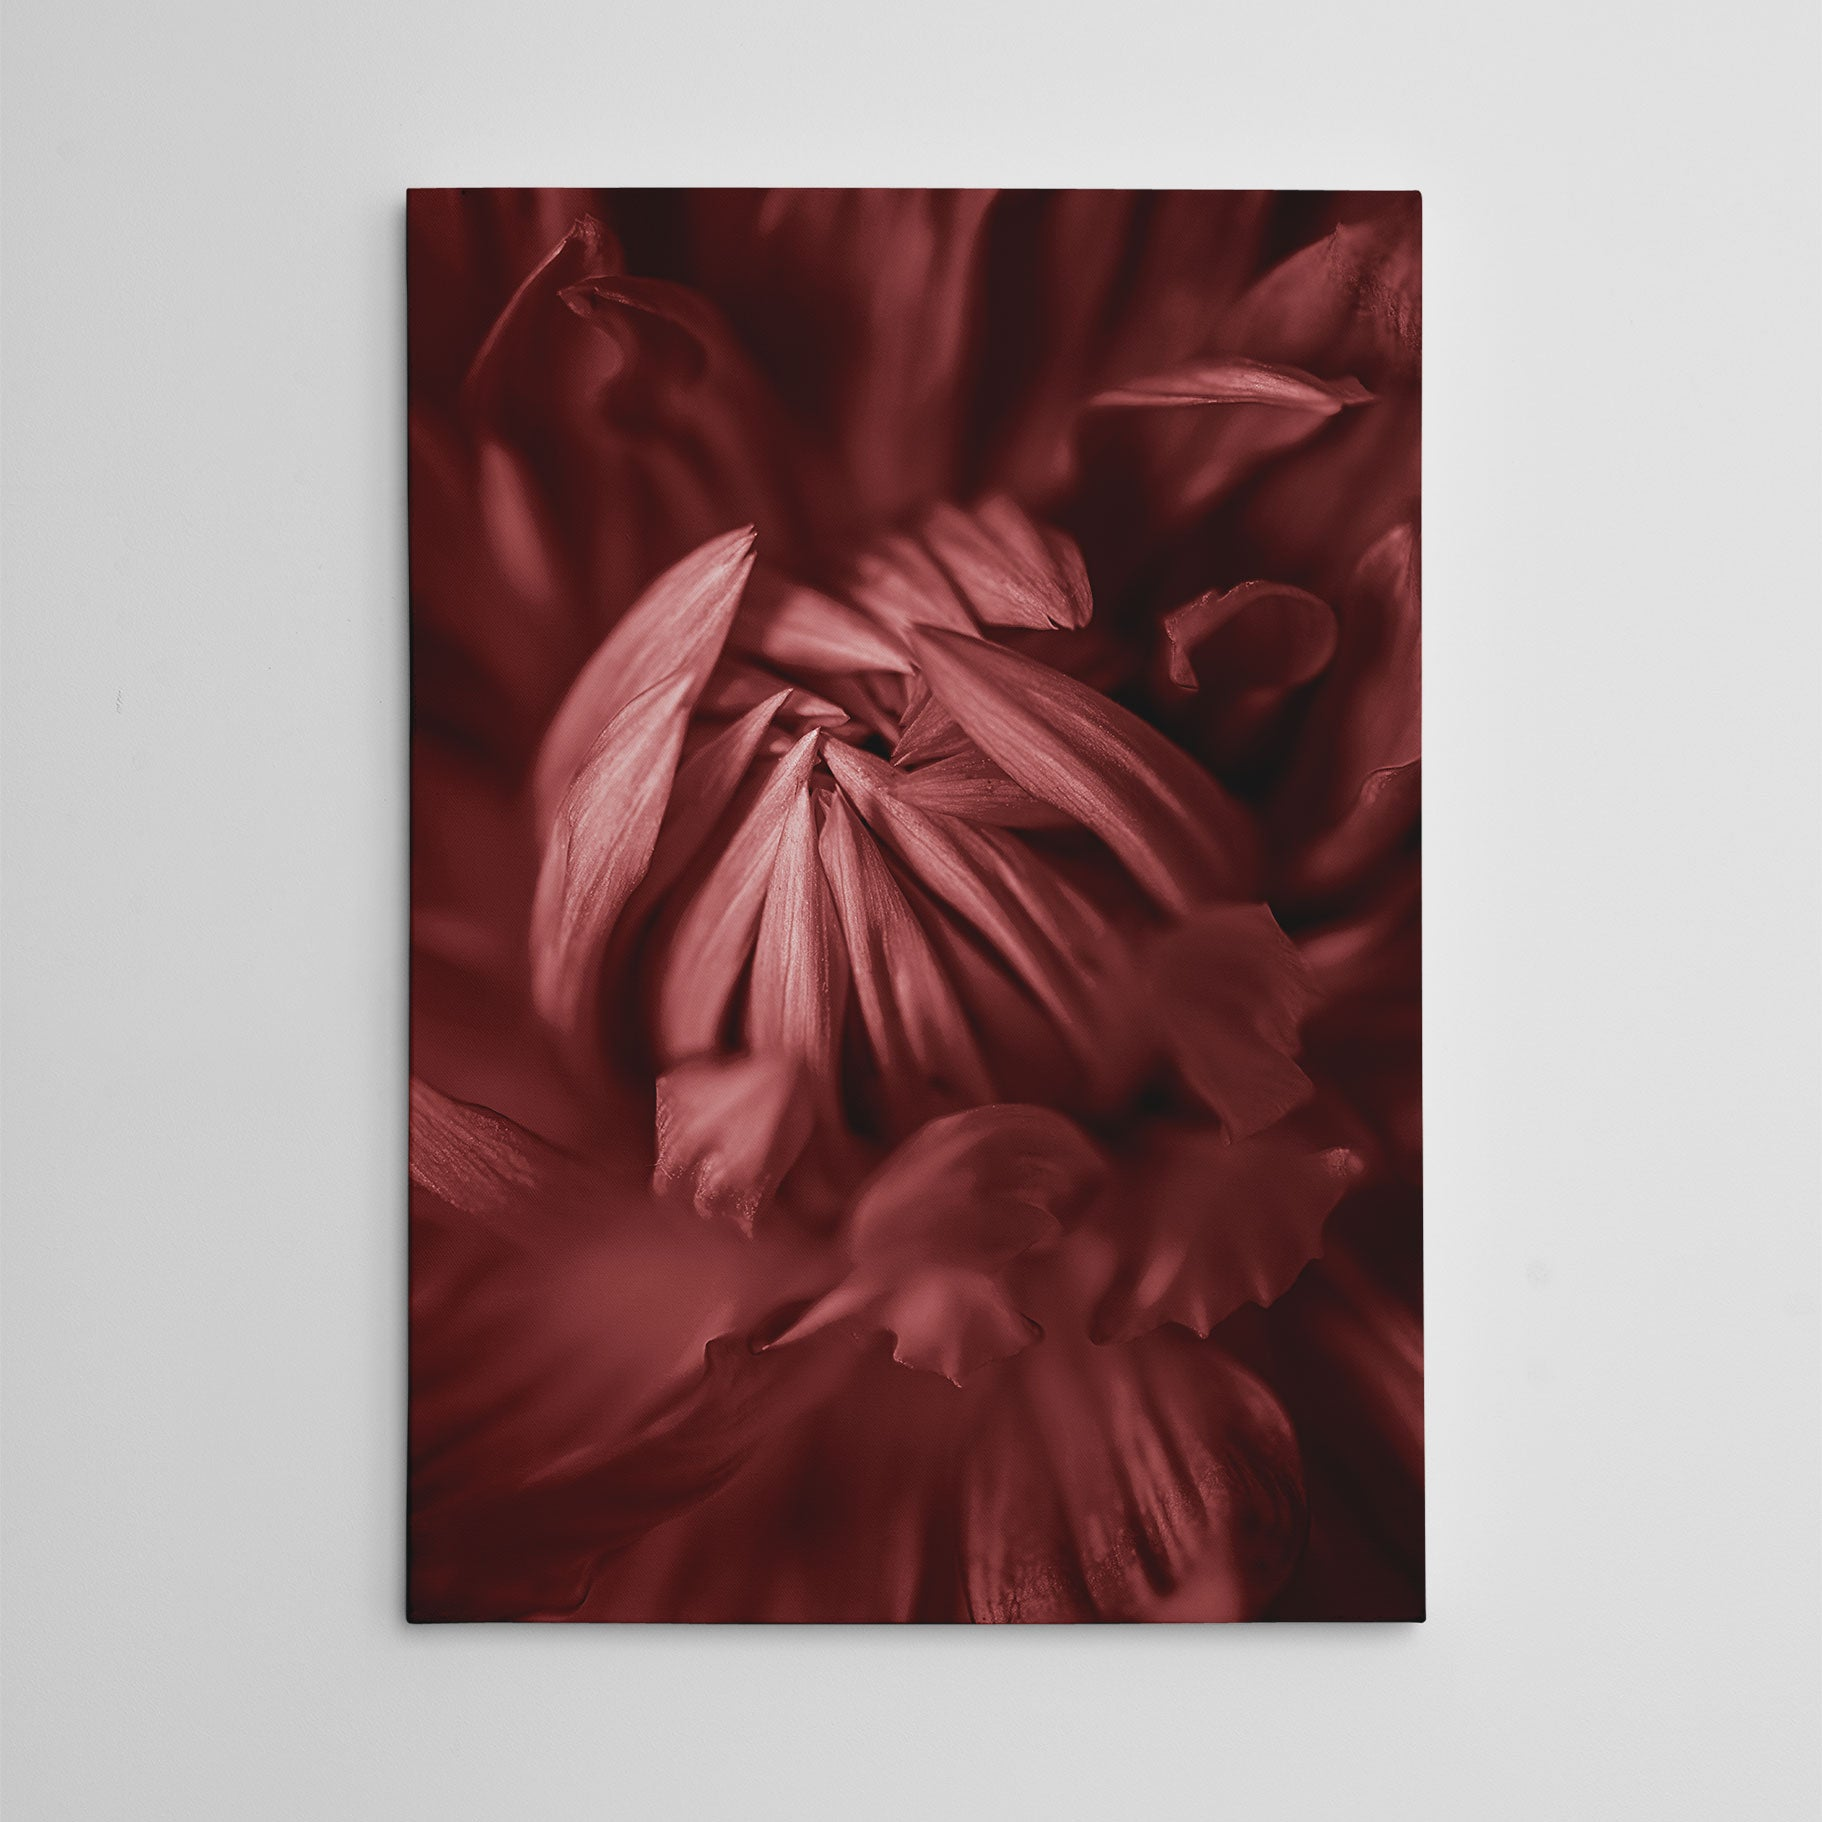 Nature inspired canvas print, with a pale red blooming flower close-up